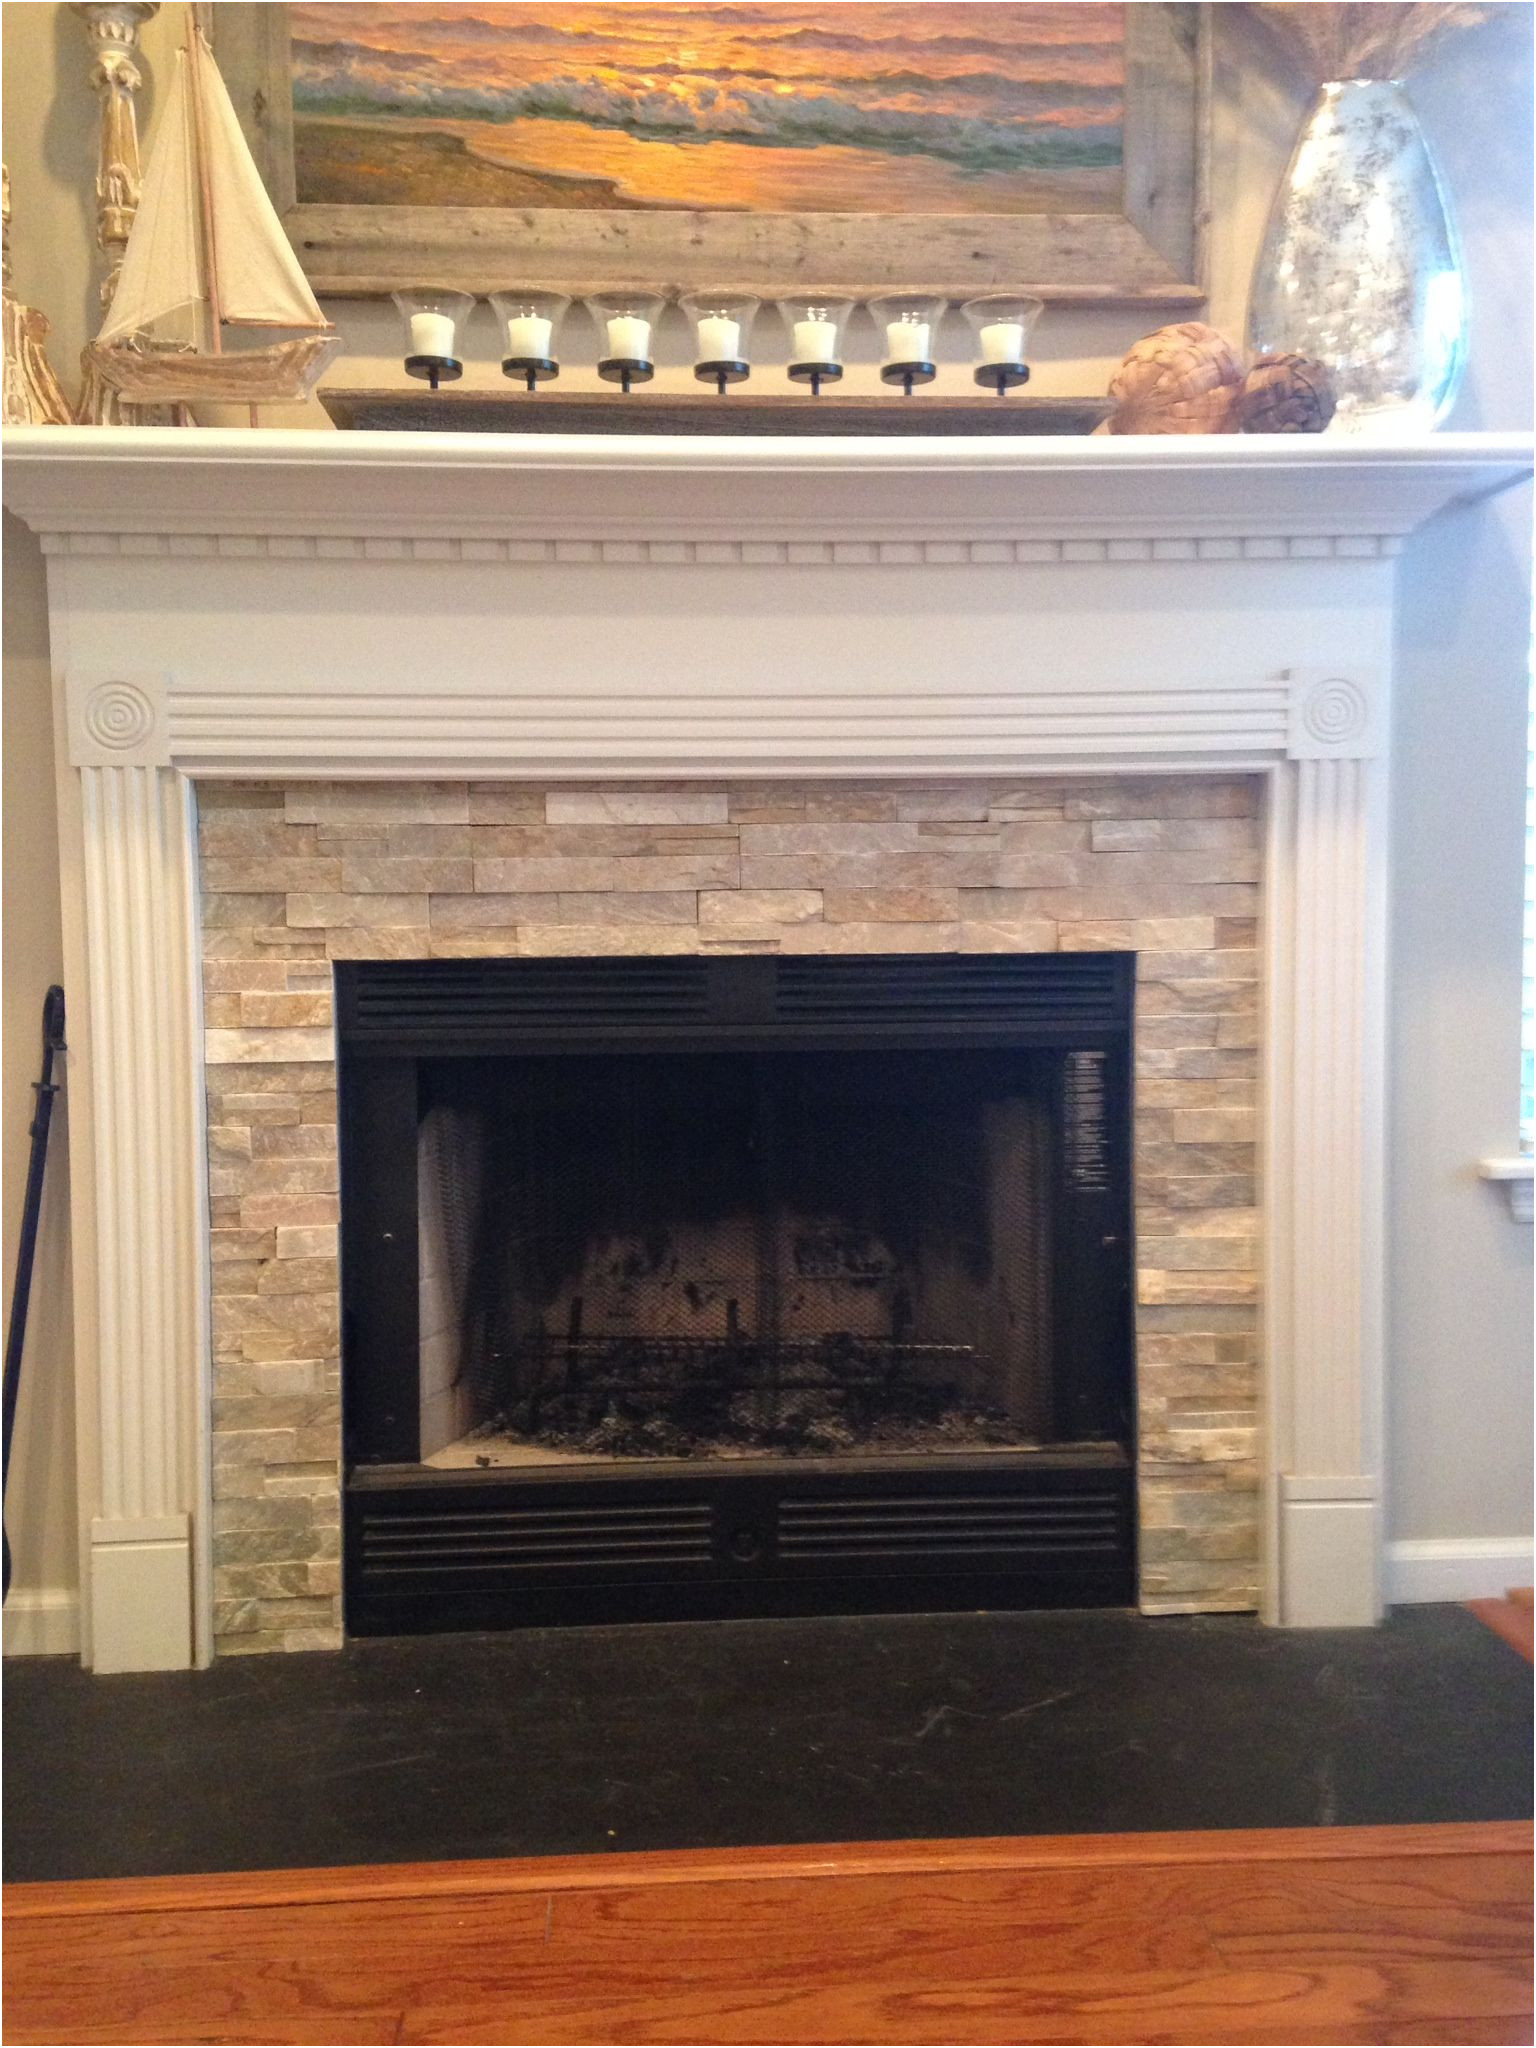 Hearth Fireplace Ideas Best Of Fireplace Idea Mantel Wainscoting Design Craftsman